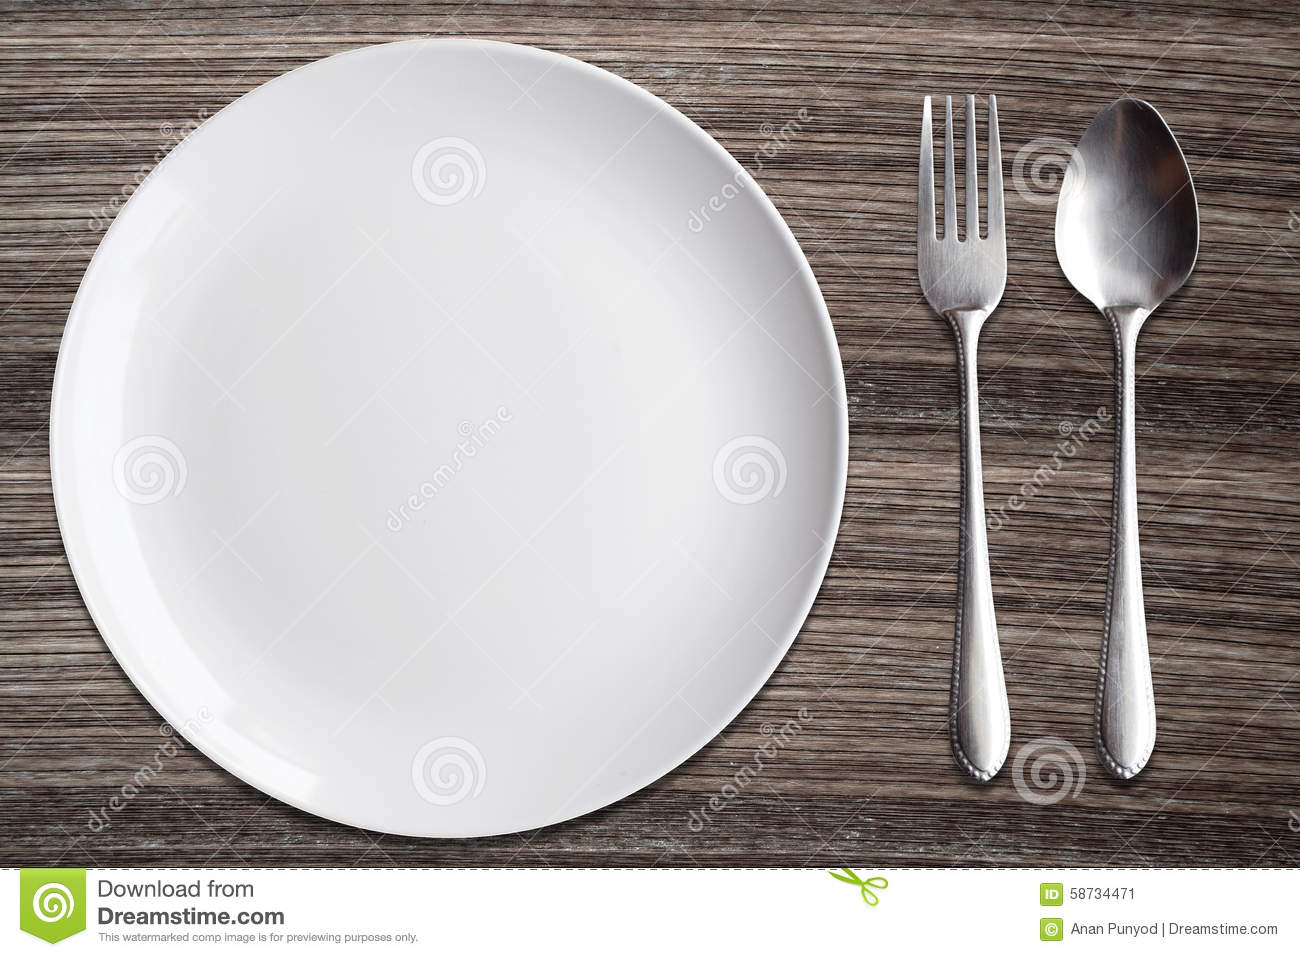 Top View White Dish Spoon Fork On Wood Background Stock  : top view white dish spoon fork wood background 58734471 from www.dreamstime.com size 1300 x 957 jpeg 161kB